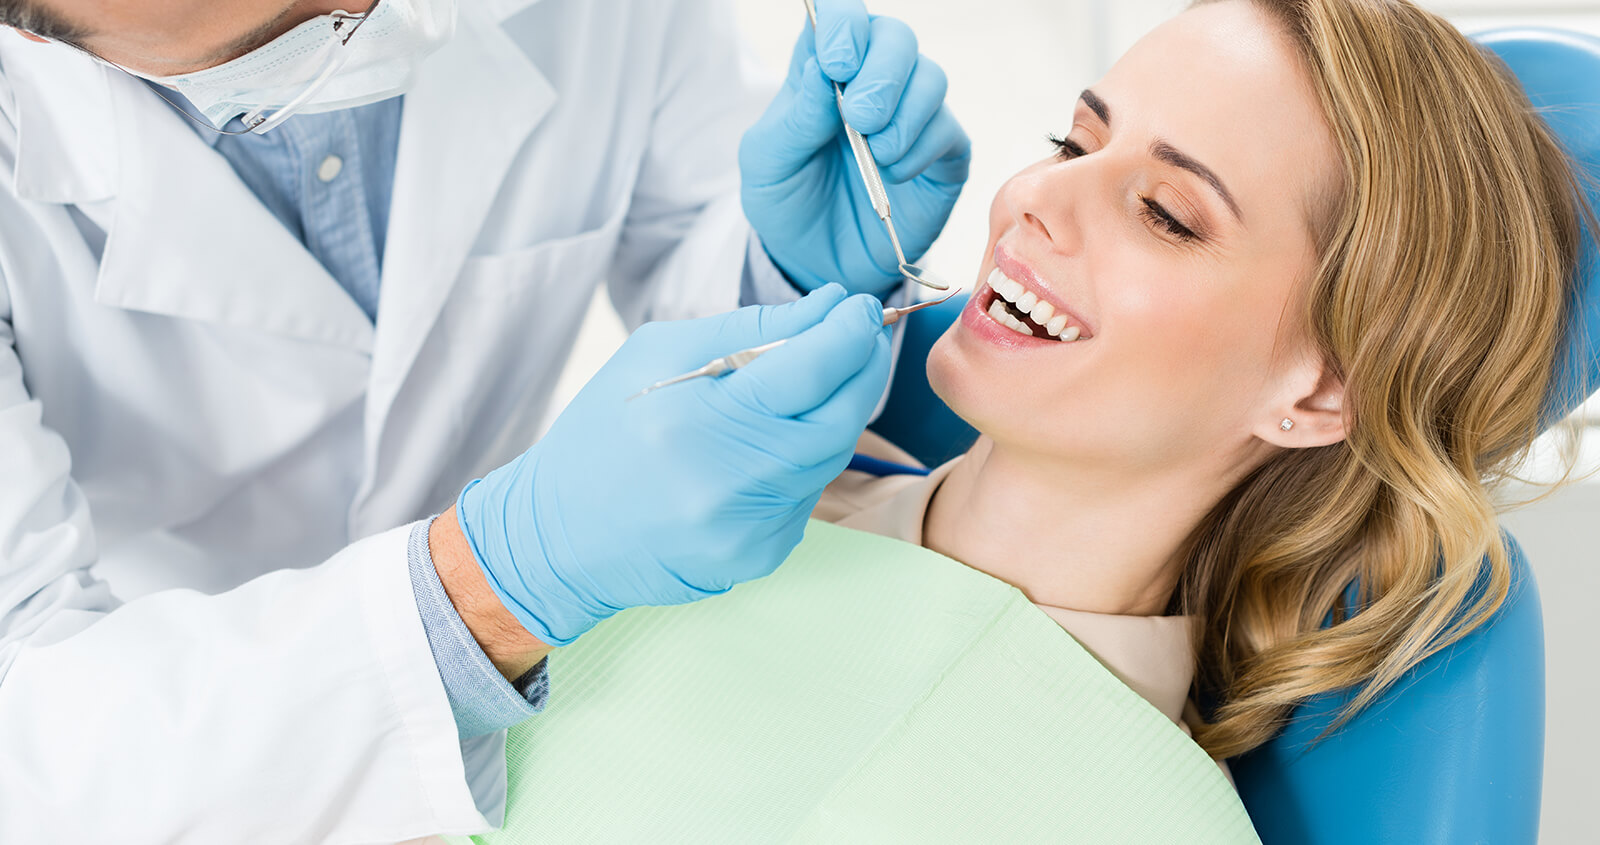 Routine Dental Checkups Important for in Walnut Creek, CA Area Patients